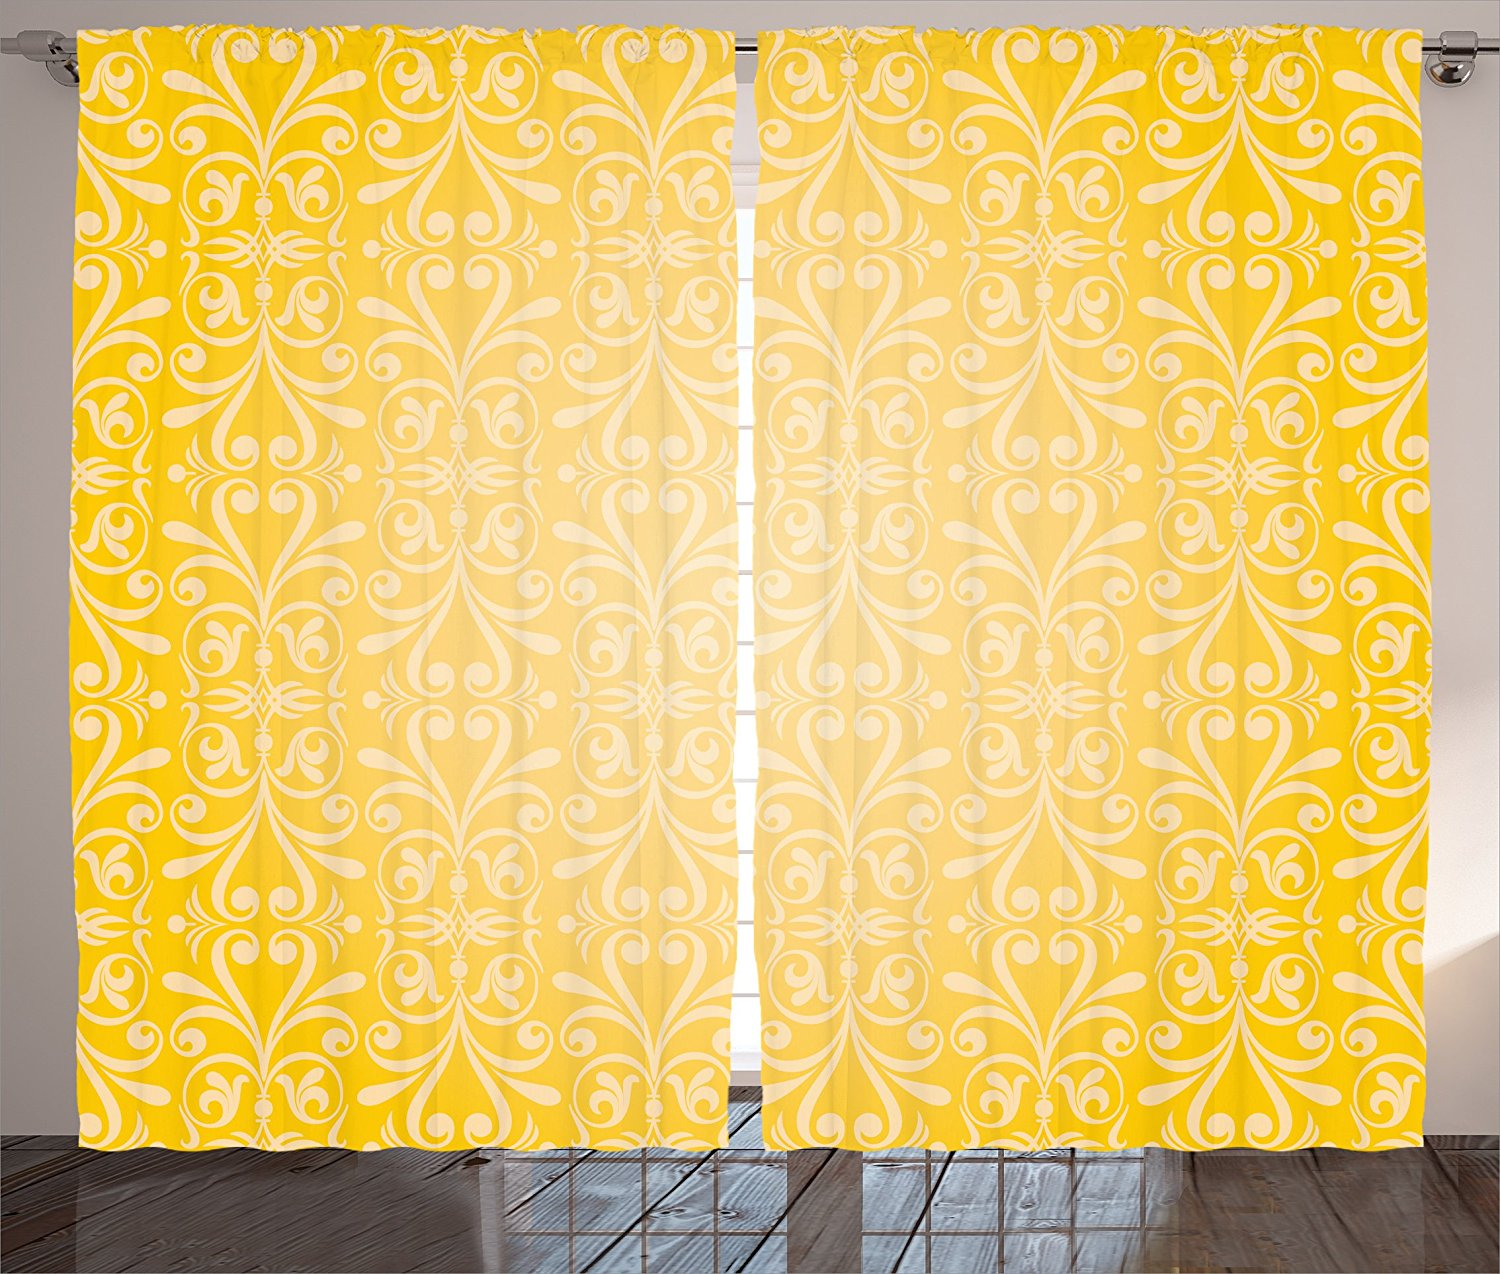 Yellow Curtains Home Decor By Ambesonne, Diagonal Swirling Ornate Victorian  Damask Patterns On Retro Background